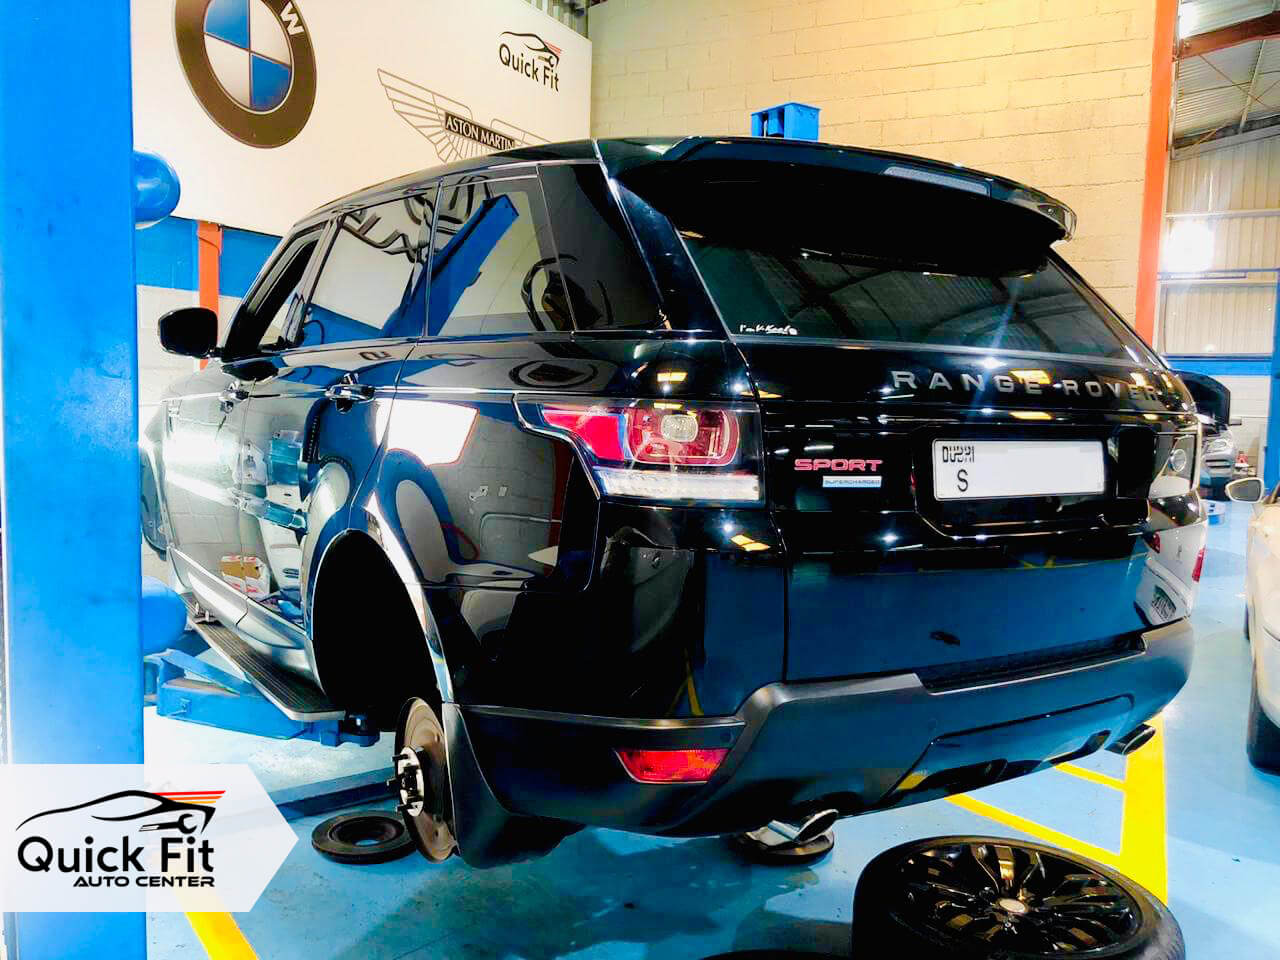 Range Rover Minor Brakes Service and At Quick Fit Auto Center